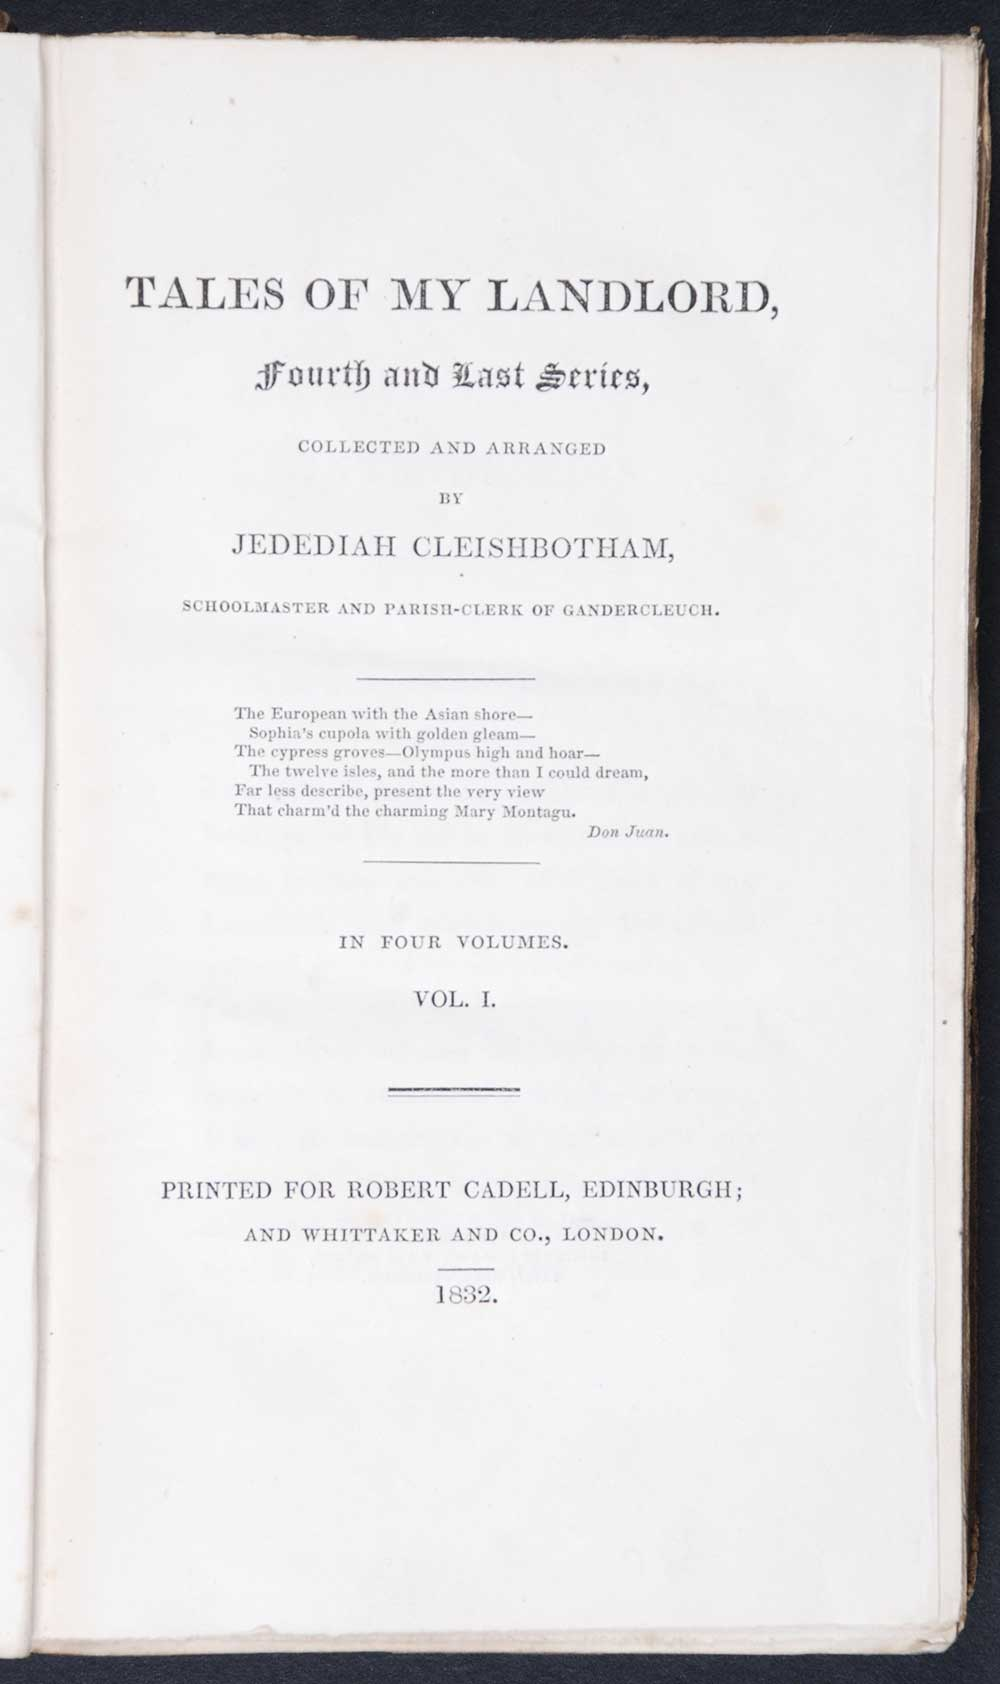 [Sir Walter Scott]. <em>Tales of my landlord: fourth and last series.</em> [1st edition]. Printed for Robert Cadell, Edinburgh; and Whittaker and Co., London, 1832. Four volumes; Vol. 1 displayed.